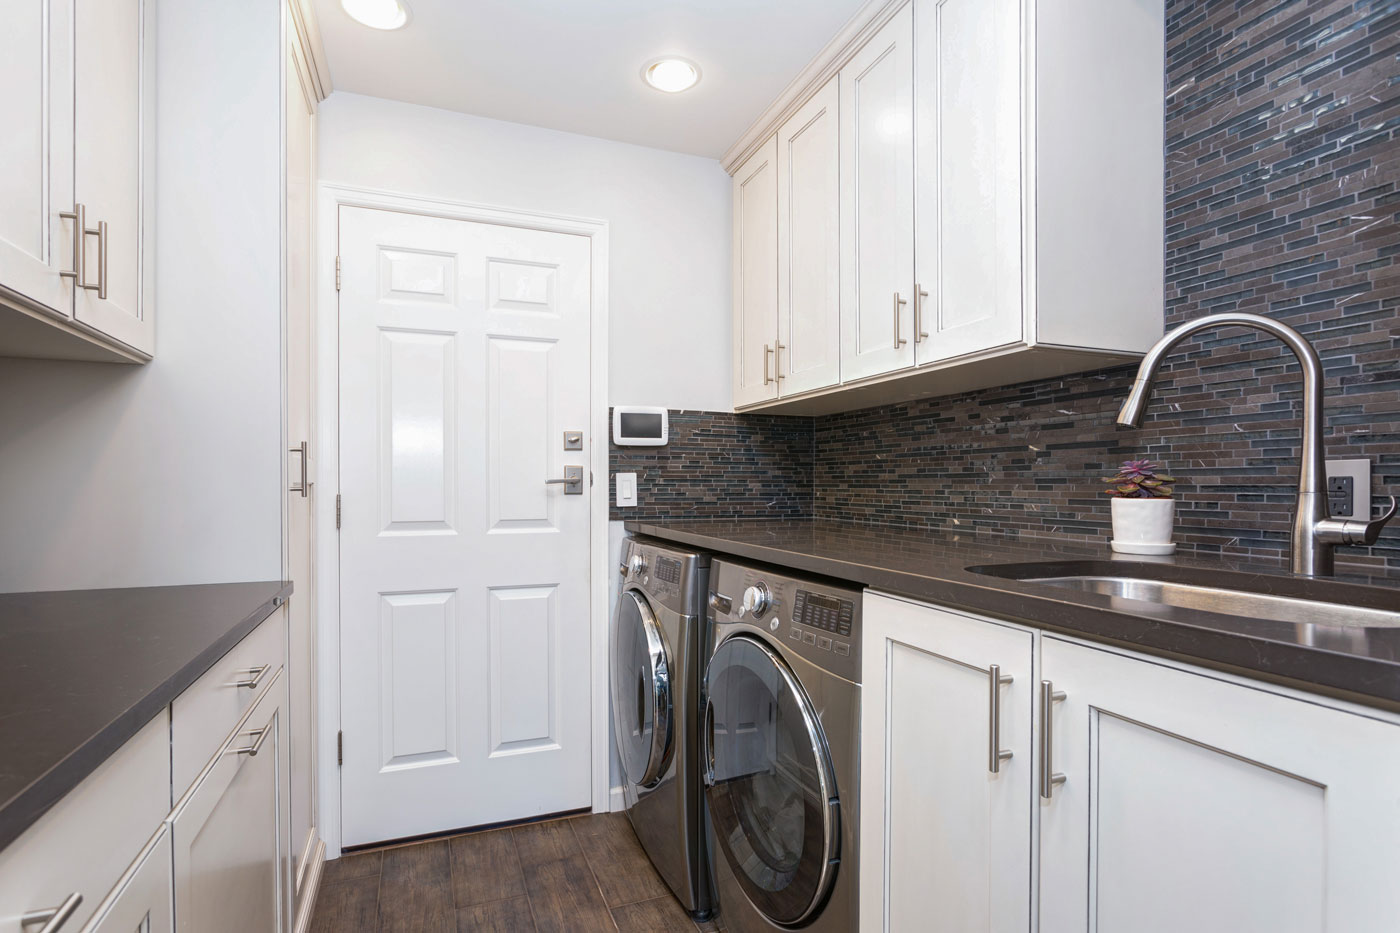 Mudroom & Laundry Room Remodeling - Twin Cities Metro